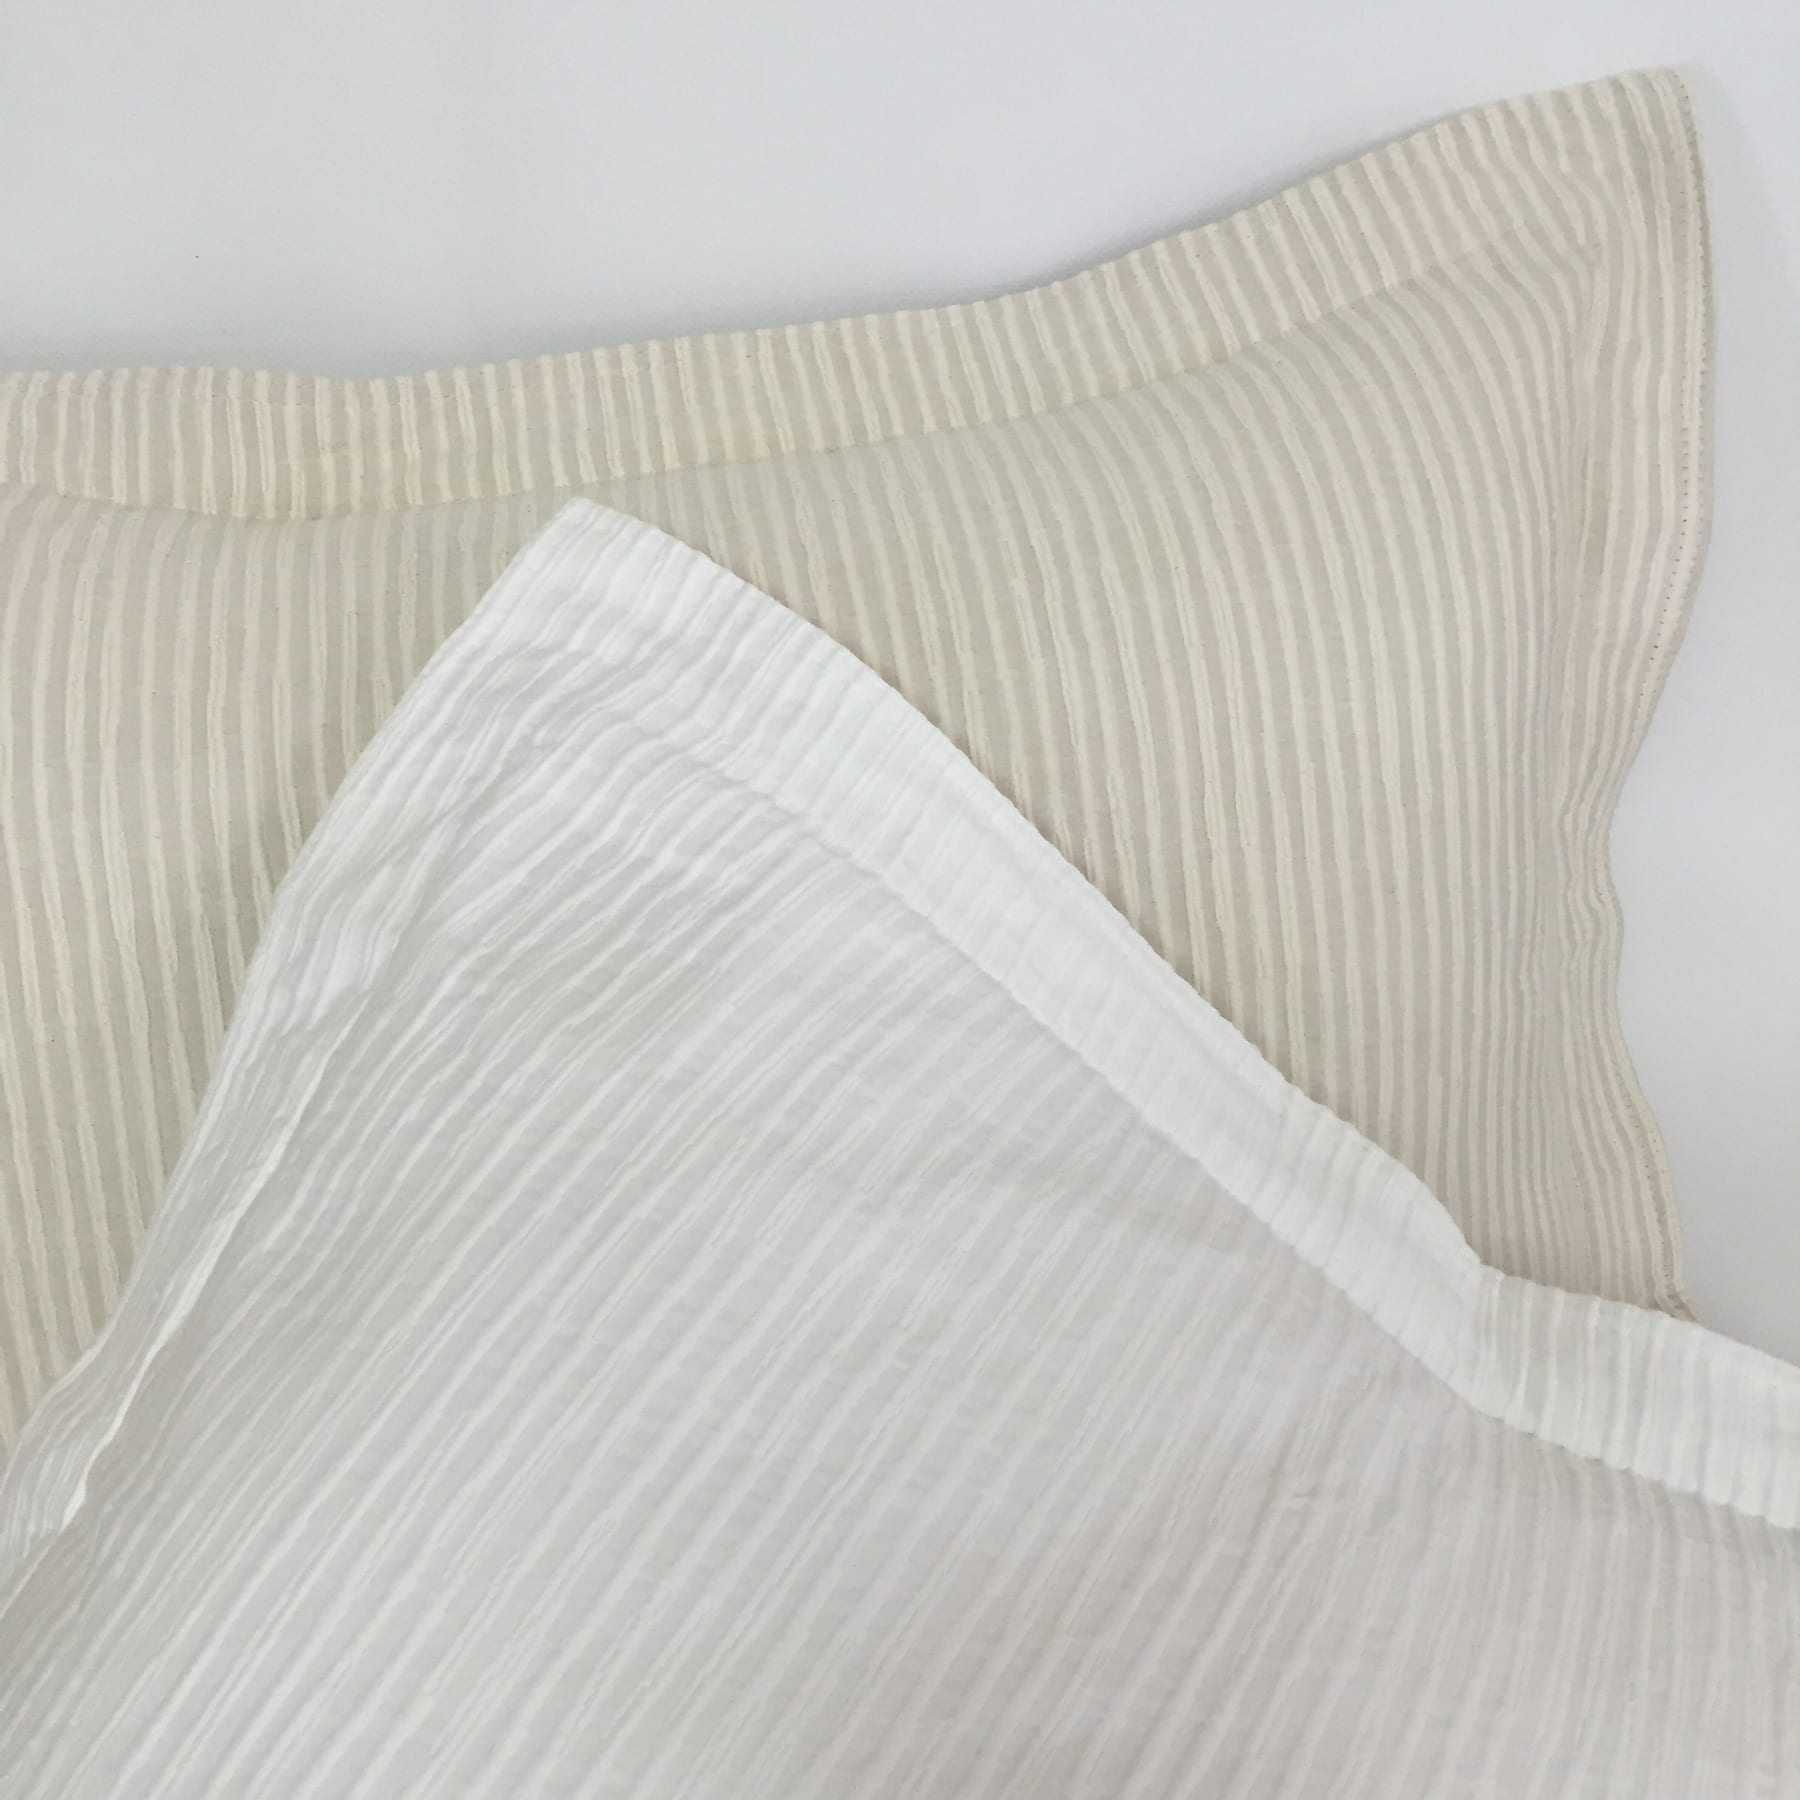 Importico Alicante Bedspread available at McKEnzie & Willis